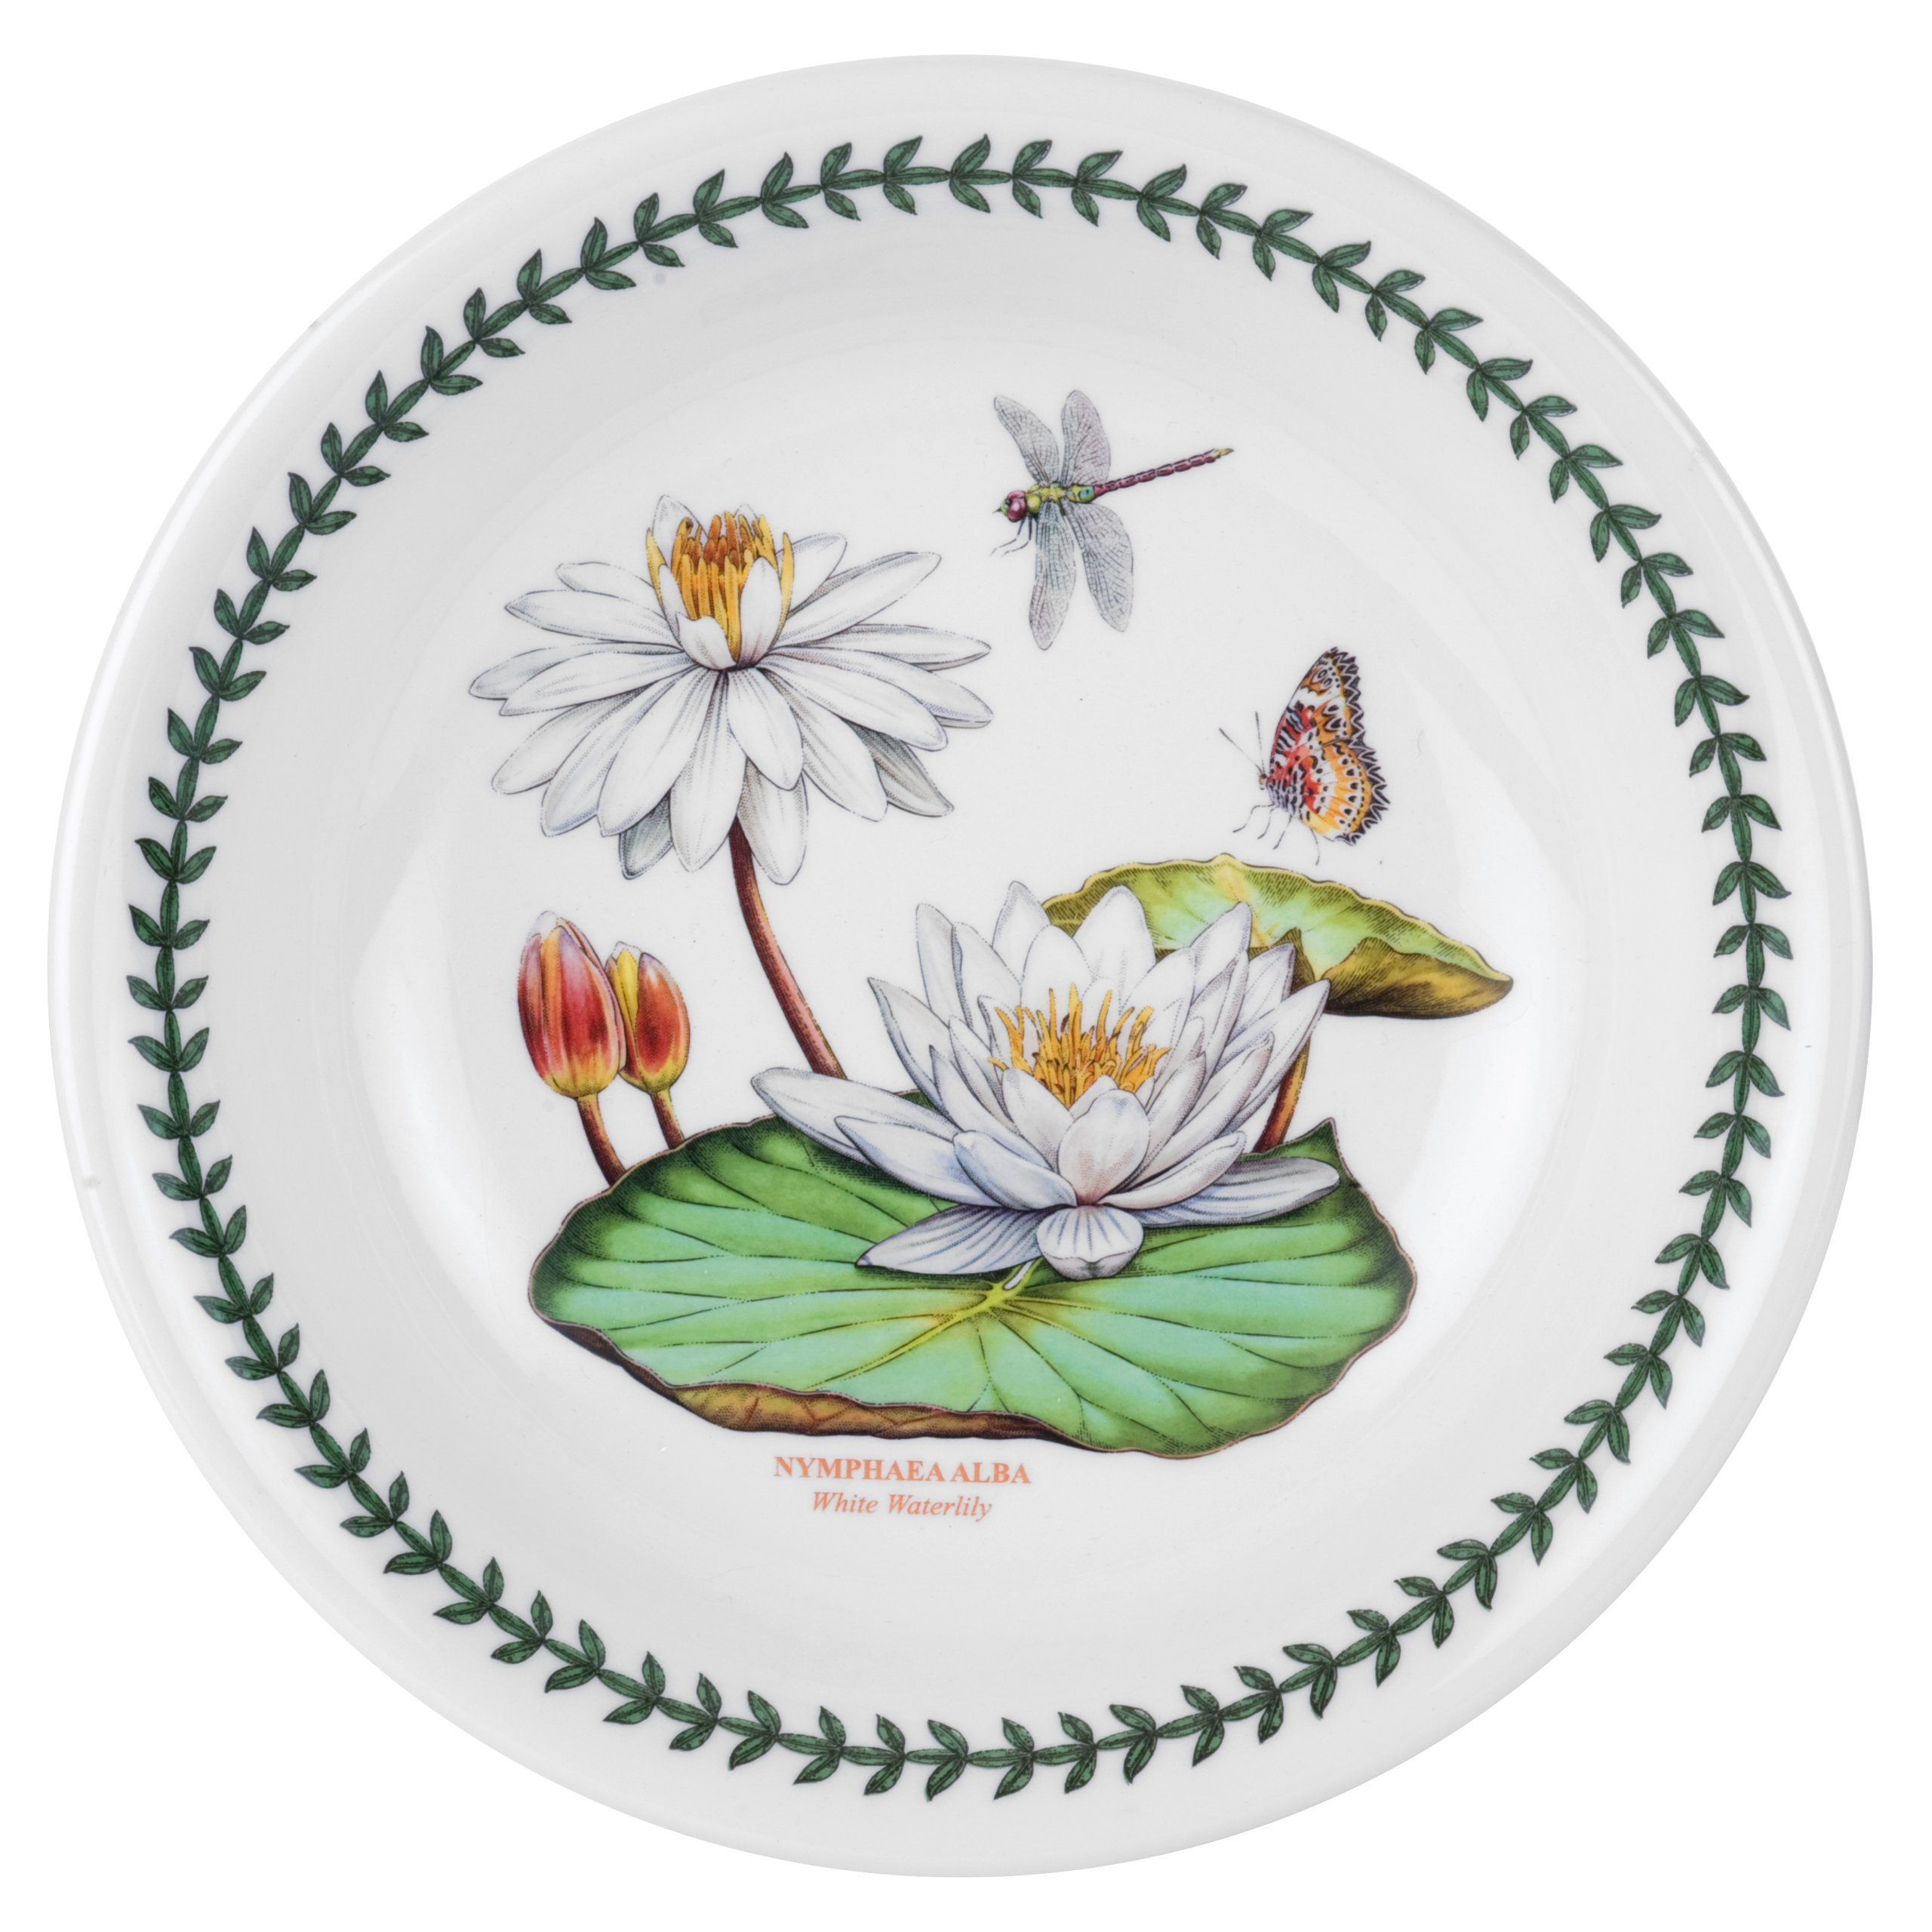 Portmeirion Exotic Botanic Garden Pasta Bowl with White Water Lily Motif, Set of 6